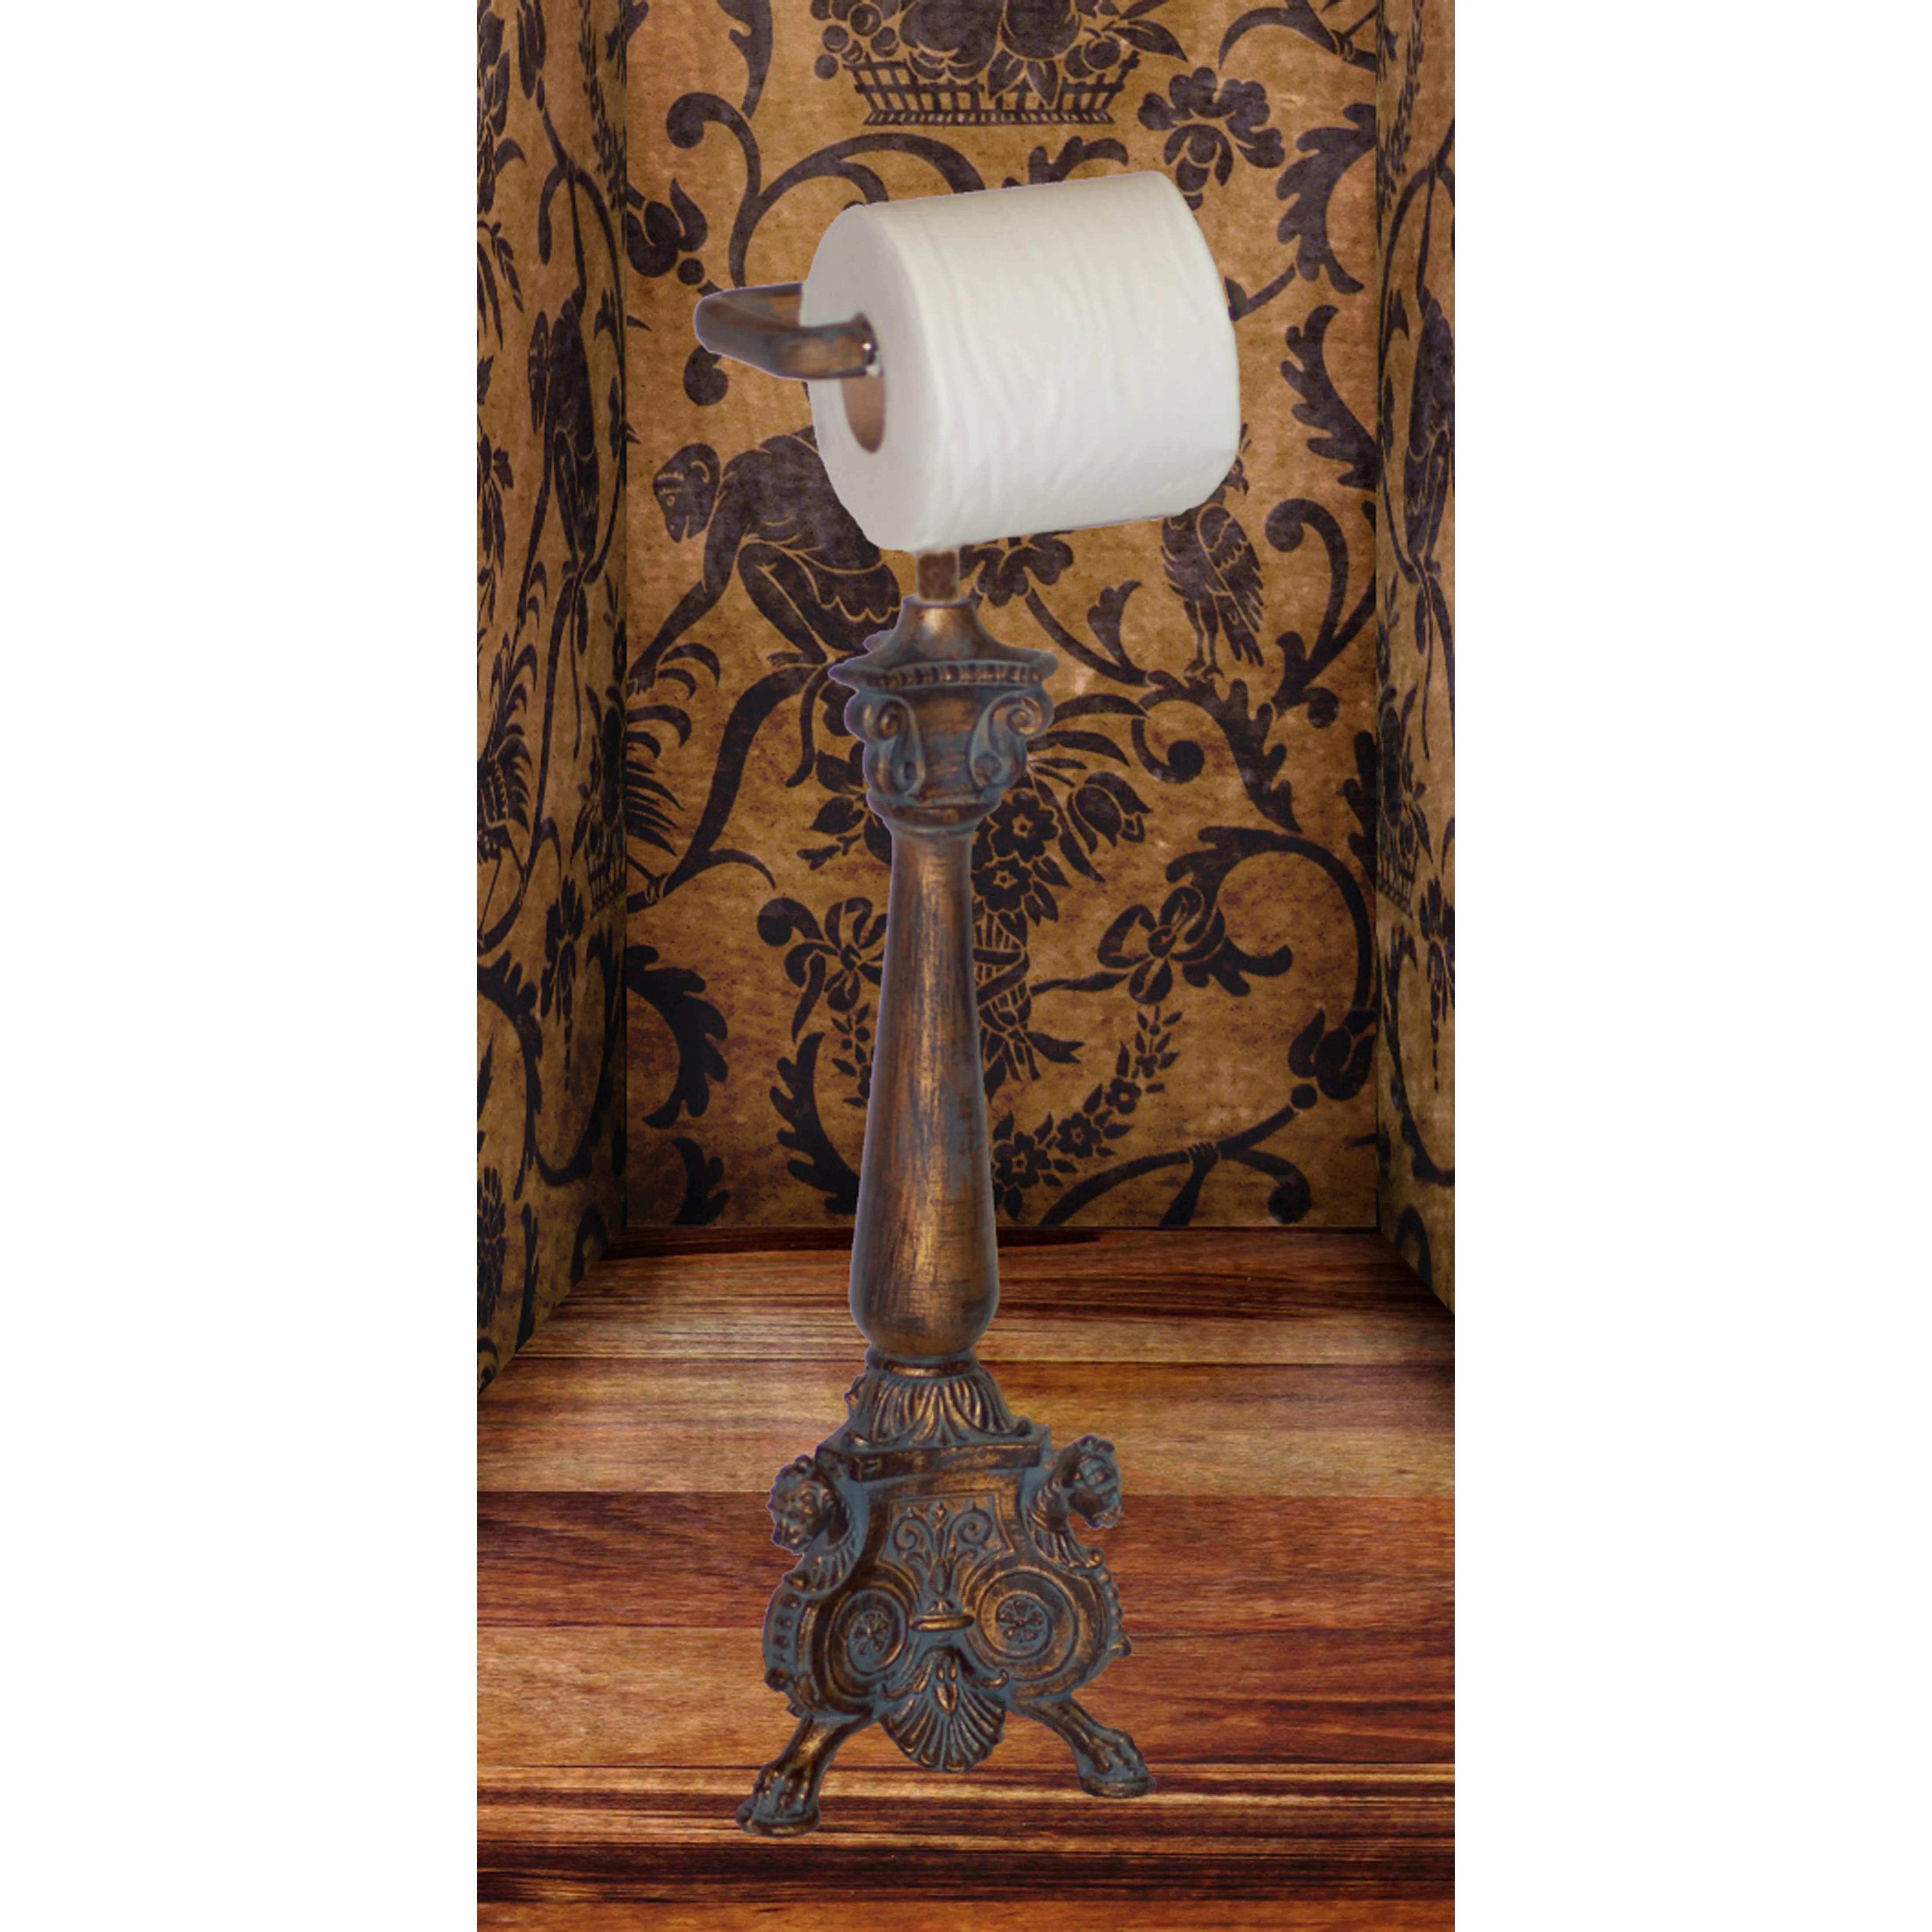 Free Standing Toilet Paper Holder Hickory Manor House Free Standing Royal Toilet Paper